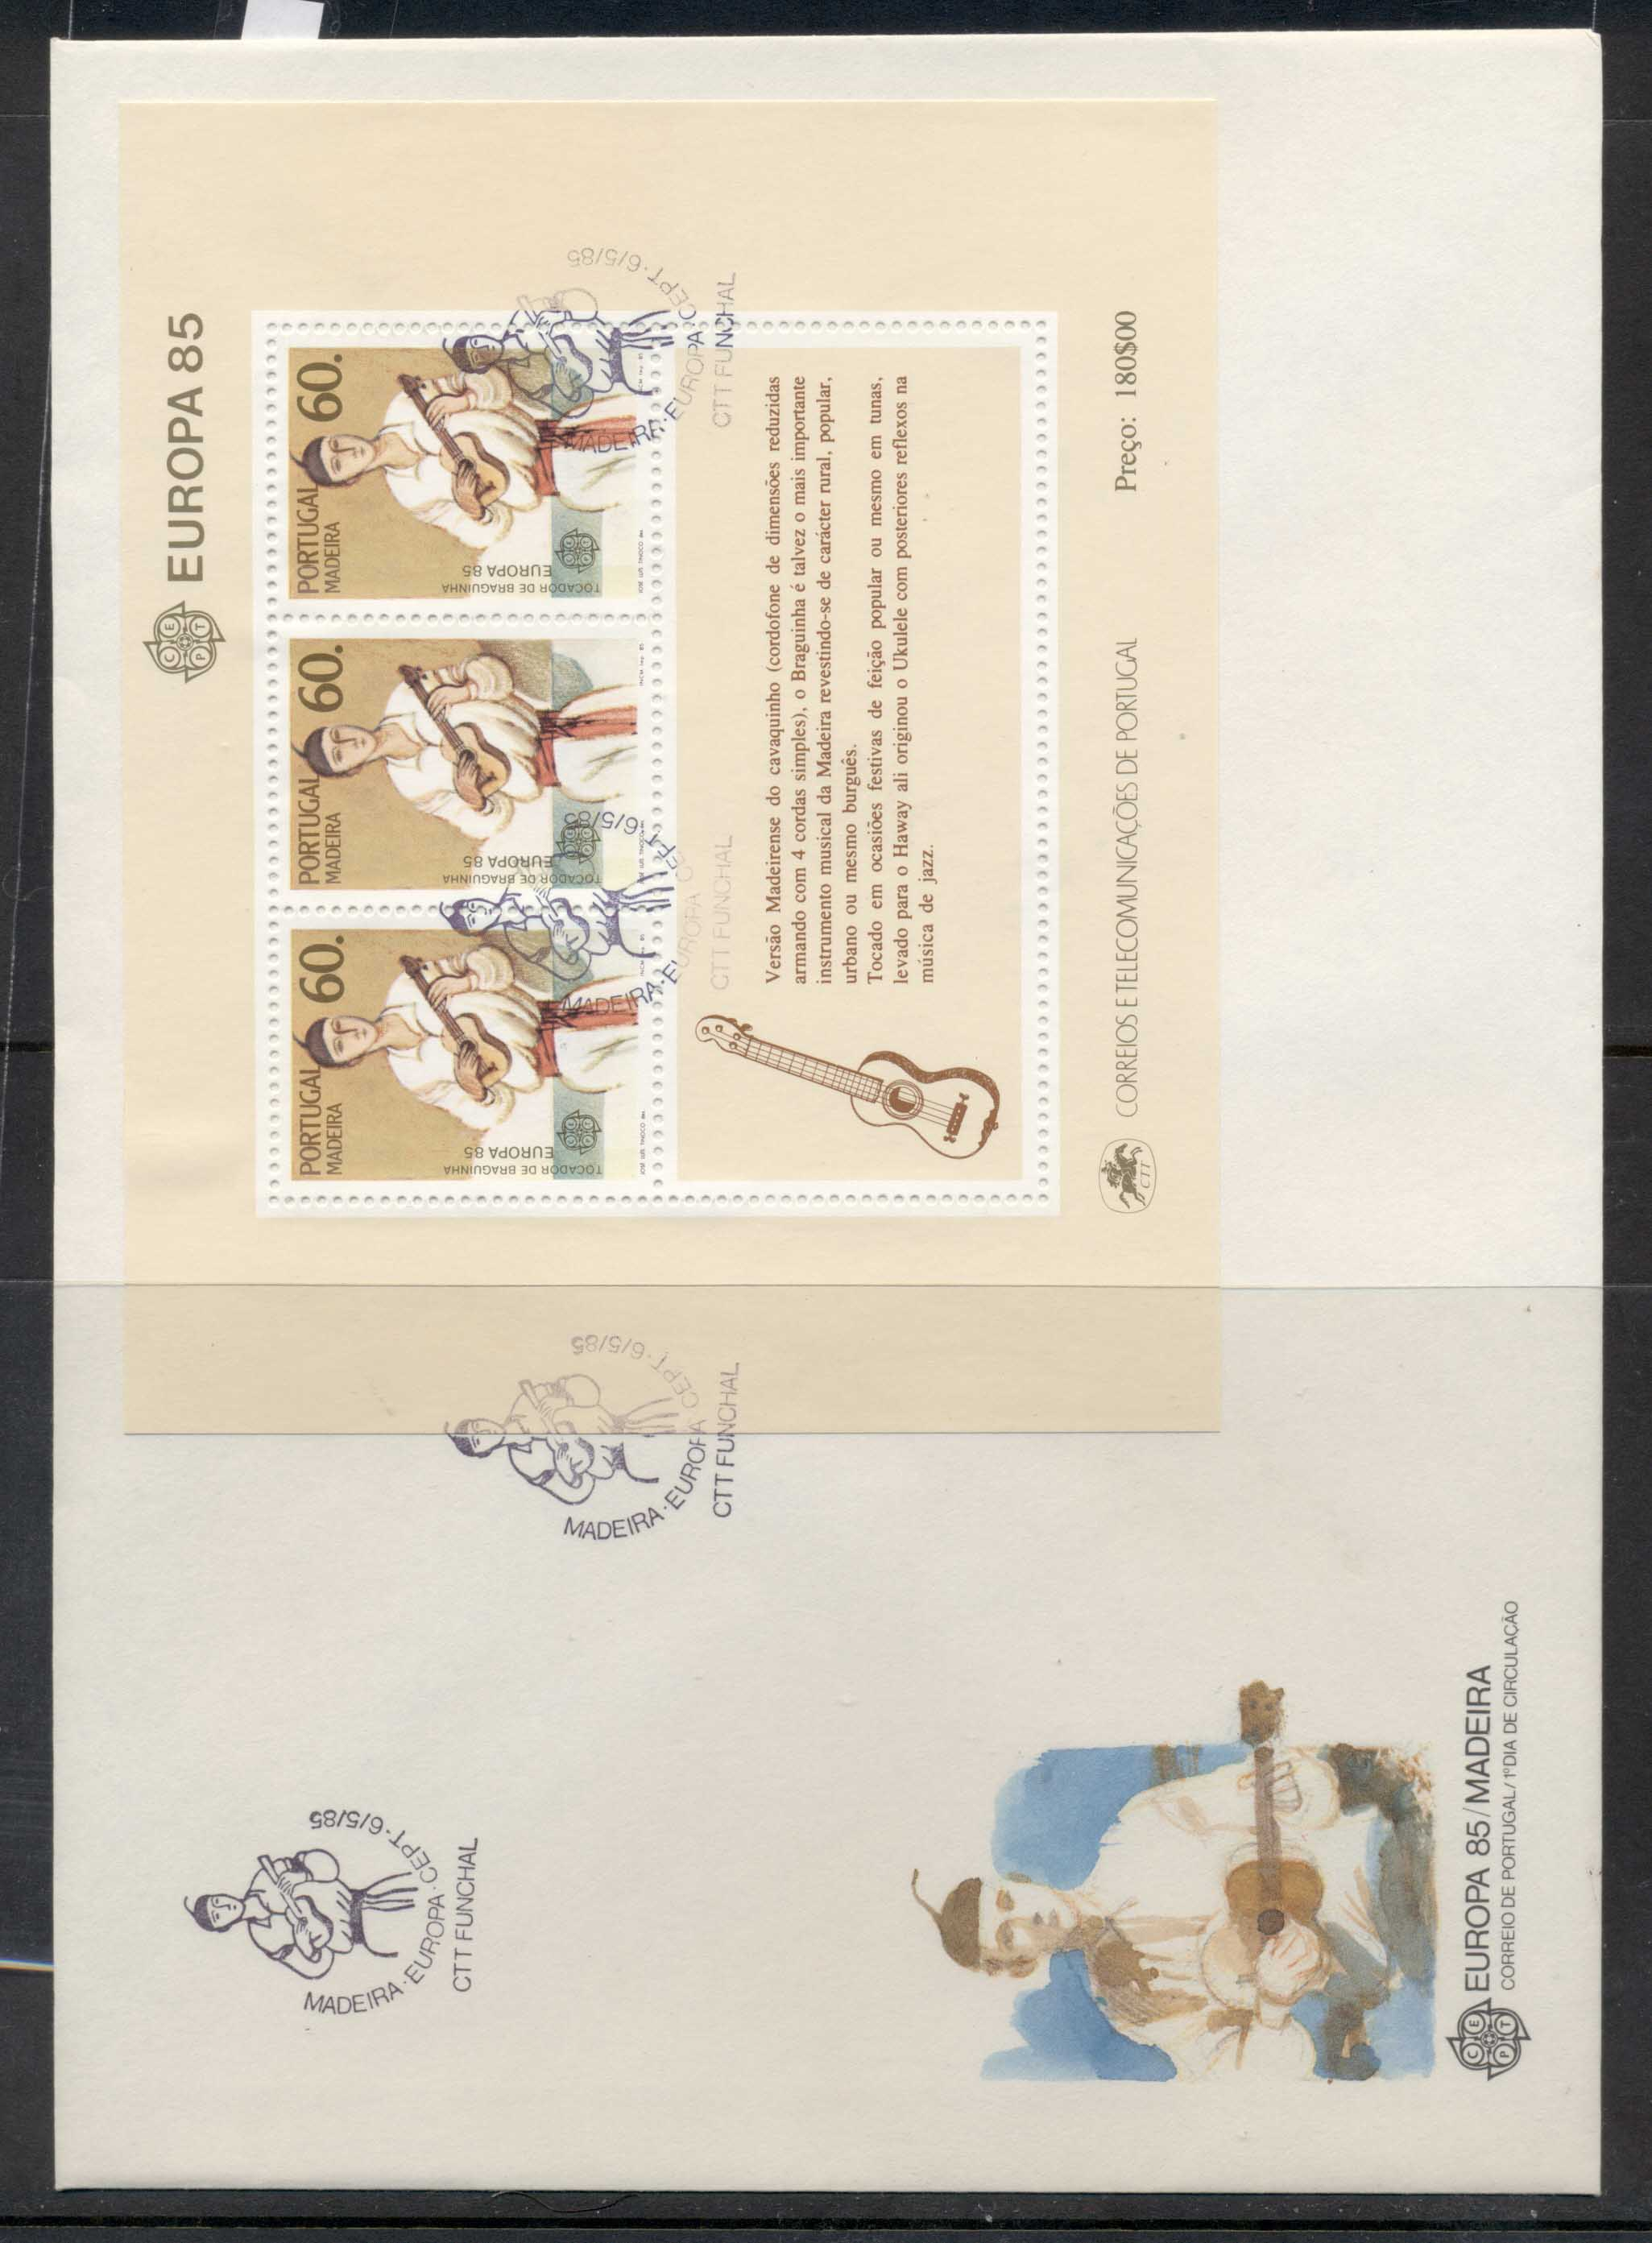 Madeira 1985 Europa Music Year XLMS FDC